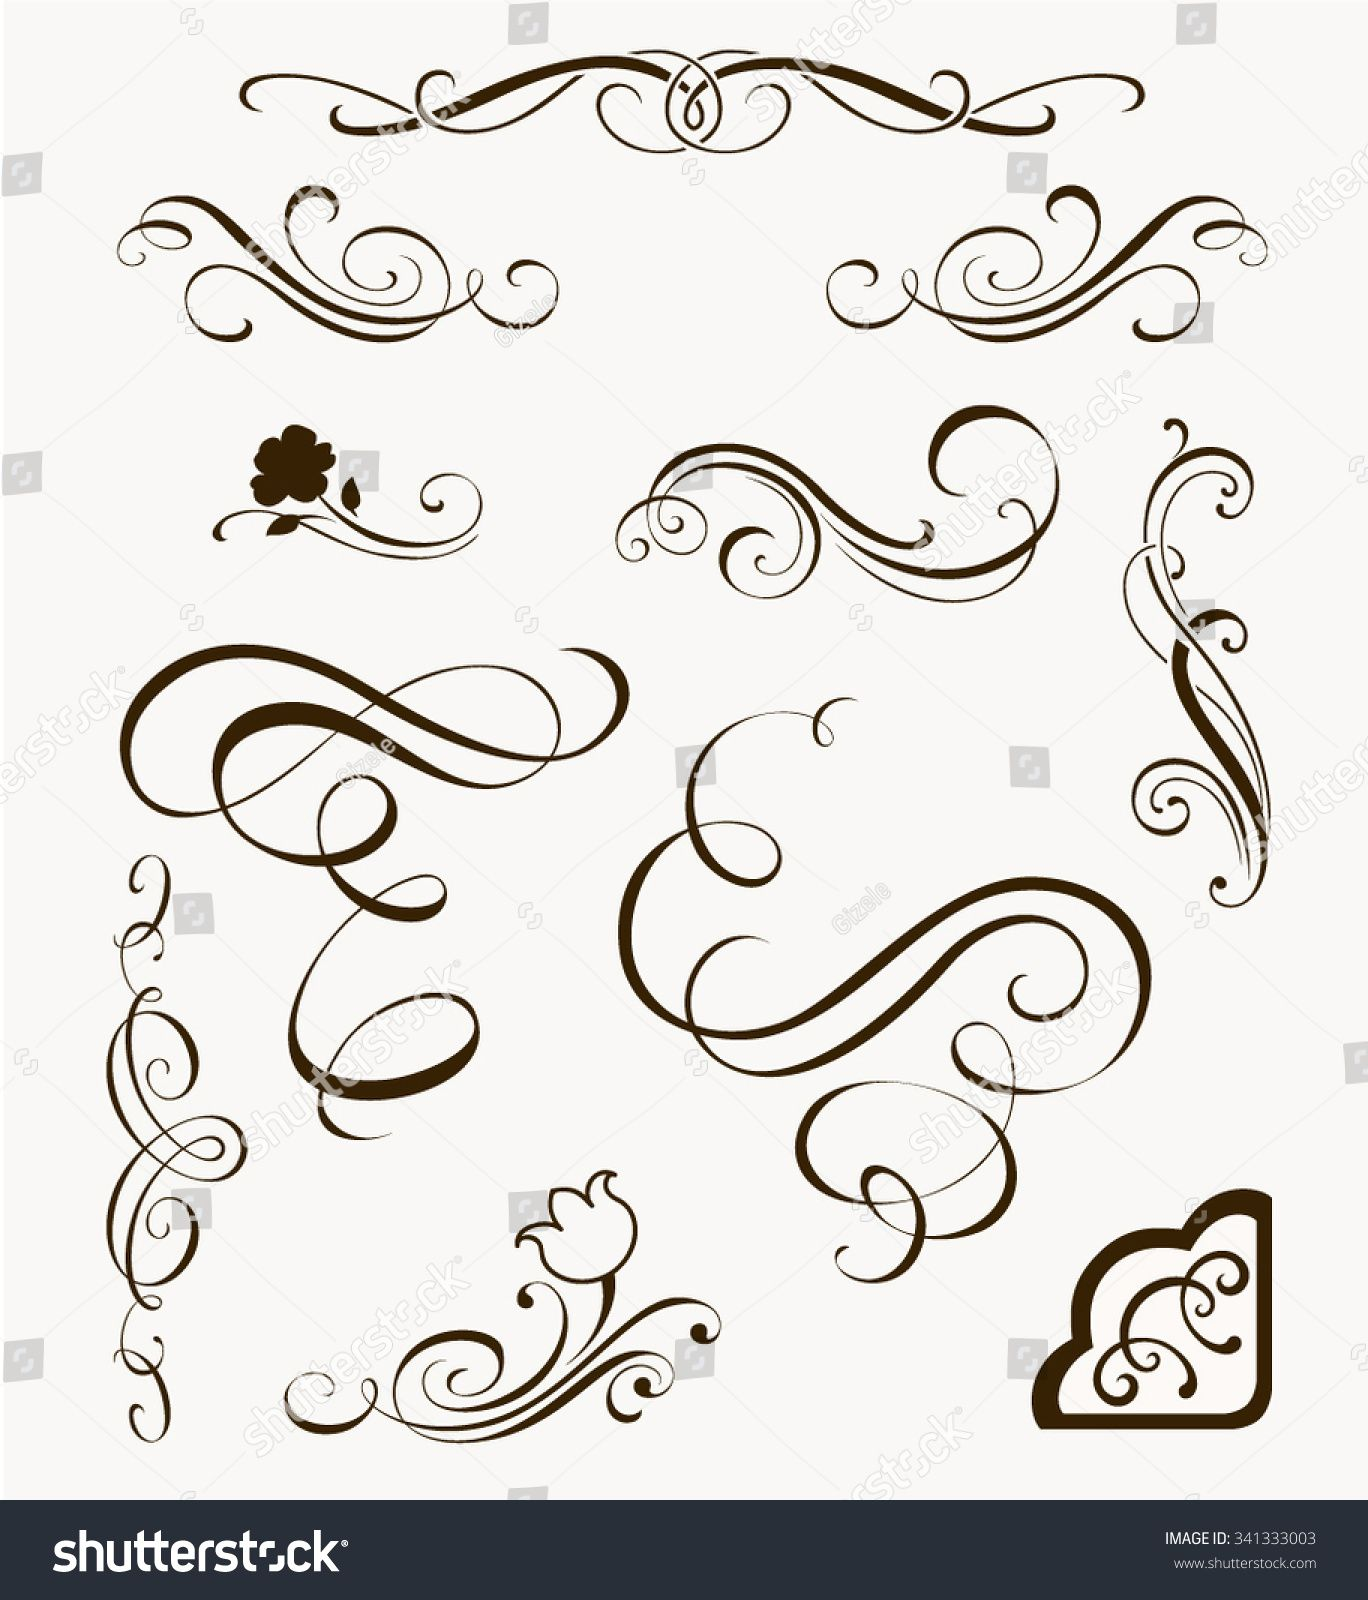 Set of decorative flourish elements calligraphic